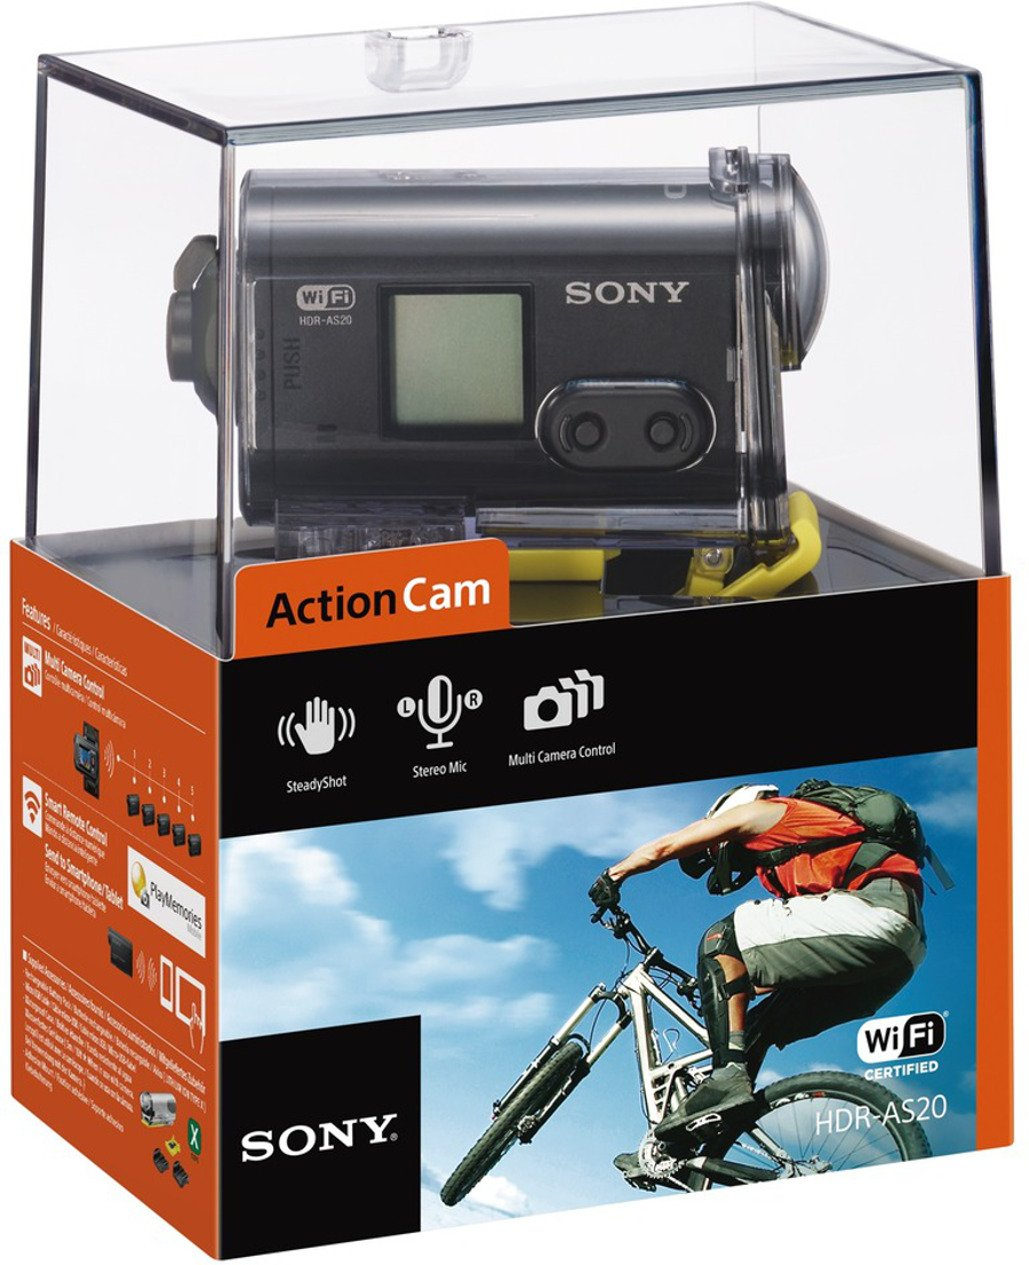 sony hdr as20 action camera 1080 pixels waterproof action. Black Bedroom Furniture Sets. Home Design Ideas